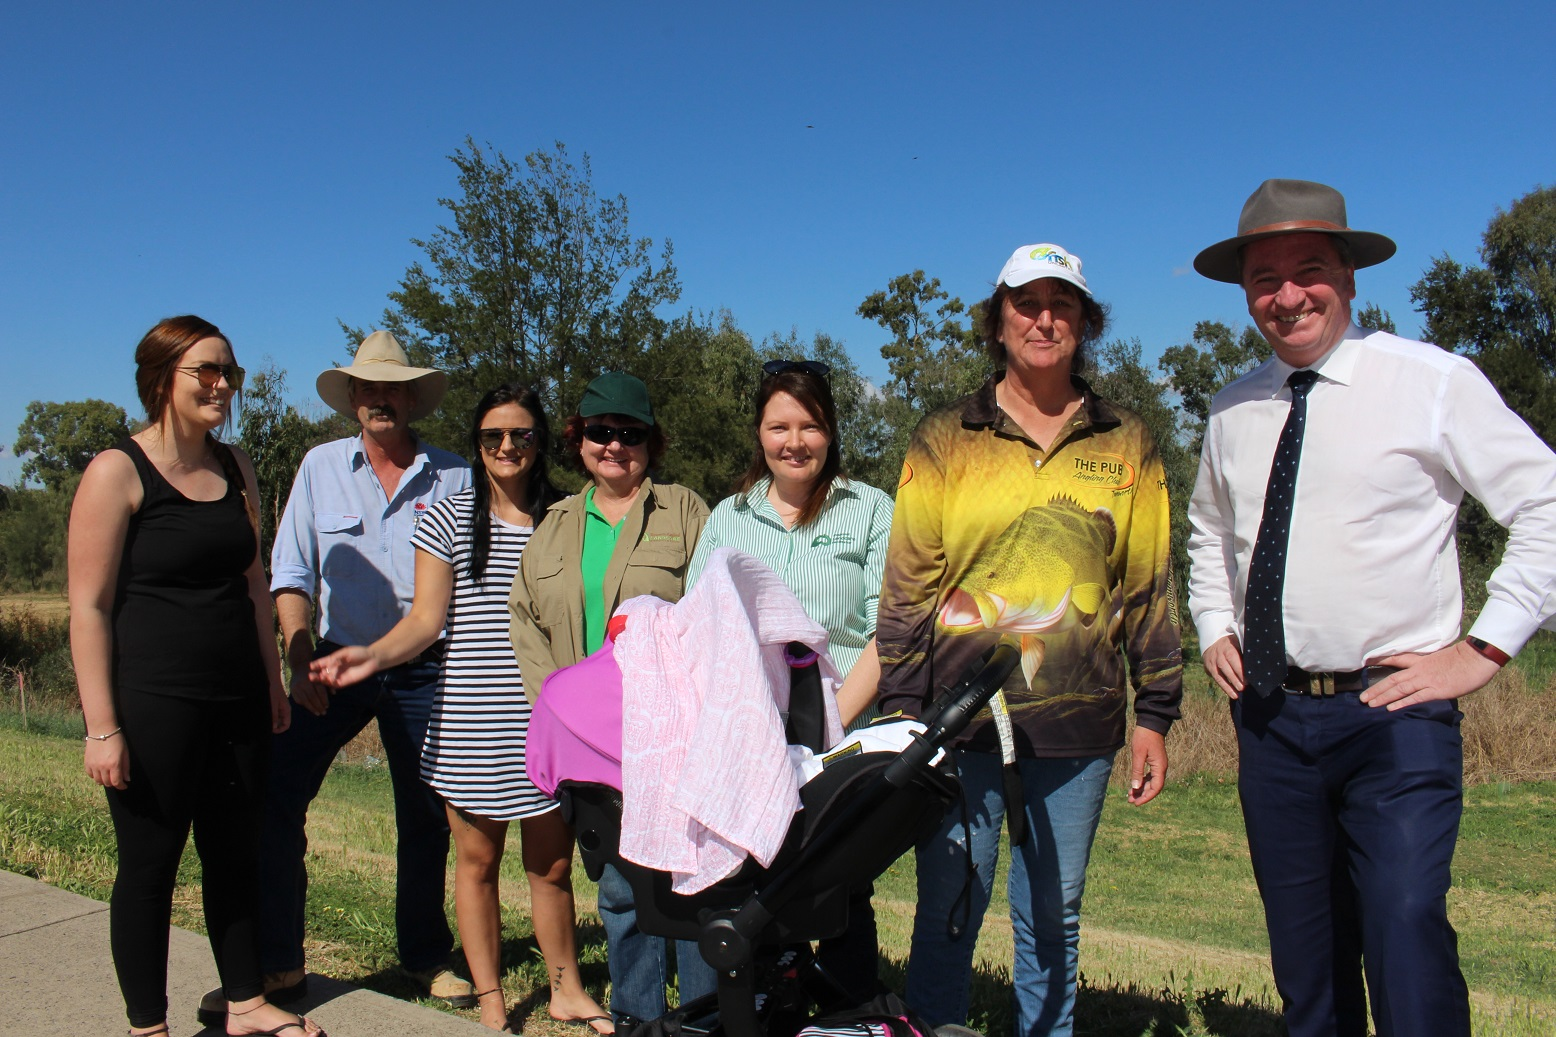 Eliza and baby Ruby, Peter Dawson, Coreena, Julie Clancy, Regional Landcare Facilitator Felicity Chittick, Oz Fish Unlimited's Anne Michie, with Deputy Prime Minister and Member for New England, Barnaby Joyce at the launch of the Oz Fish on the Peel – Anglers for Habitat project.